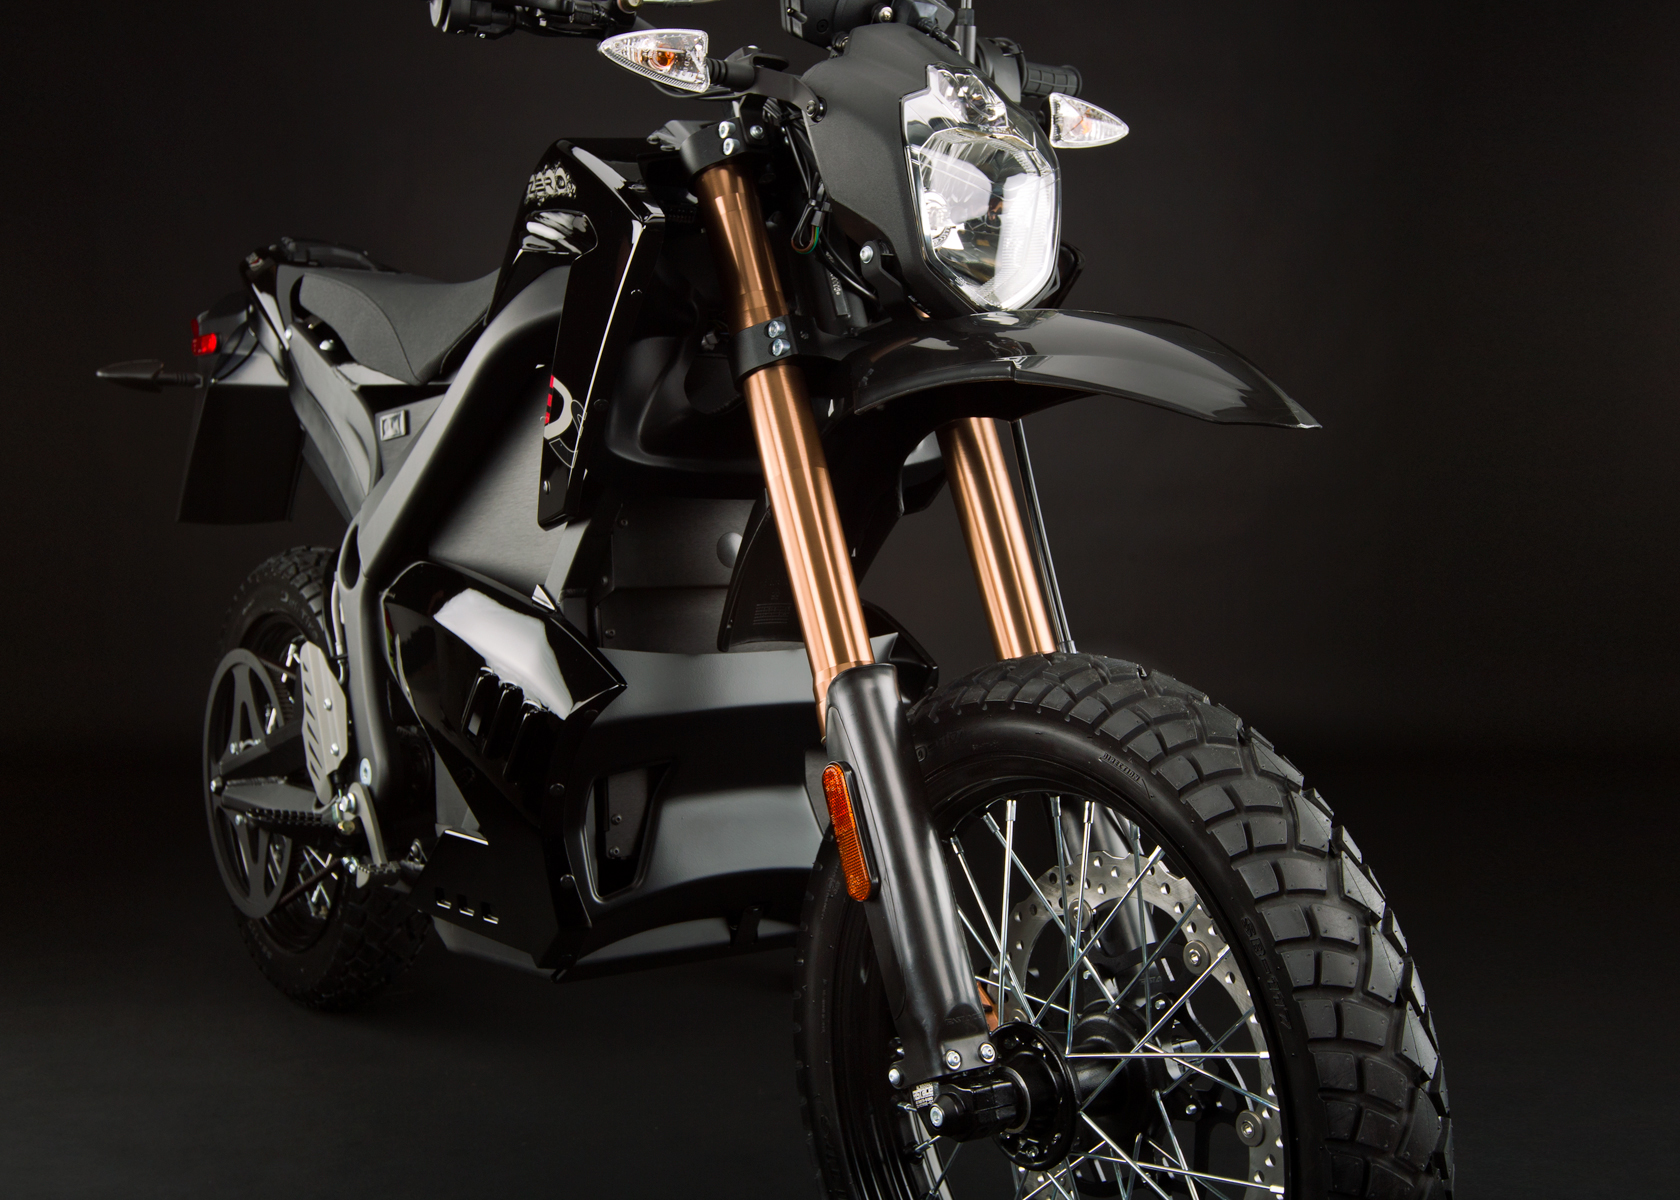 '.2012 Zero DS Electric Motorcycle: Front Fork.'